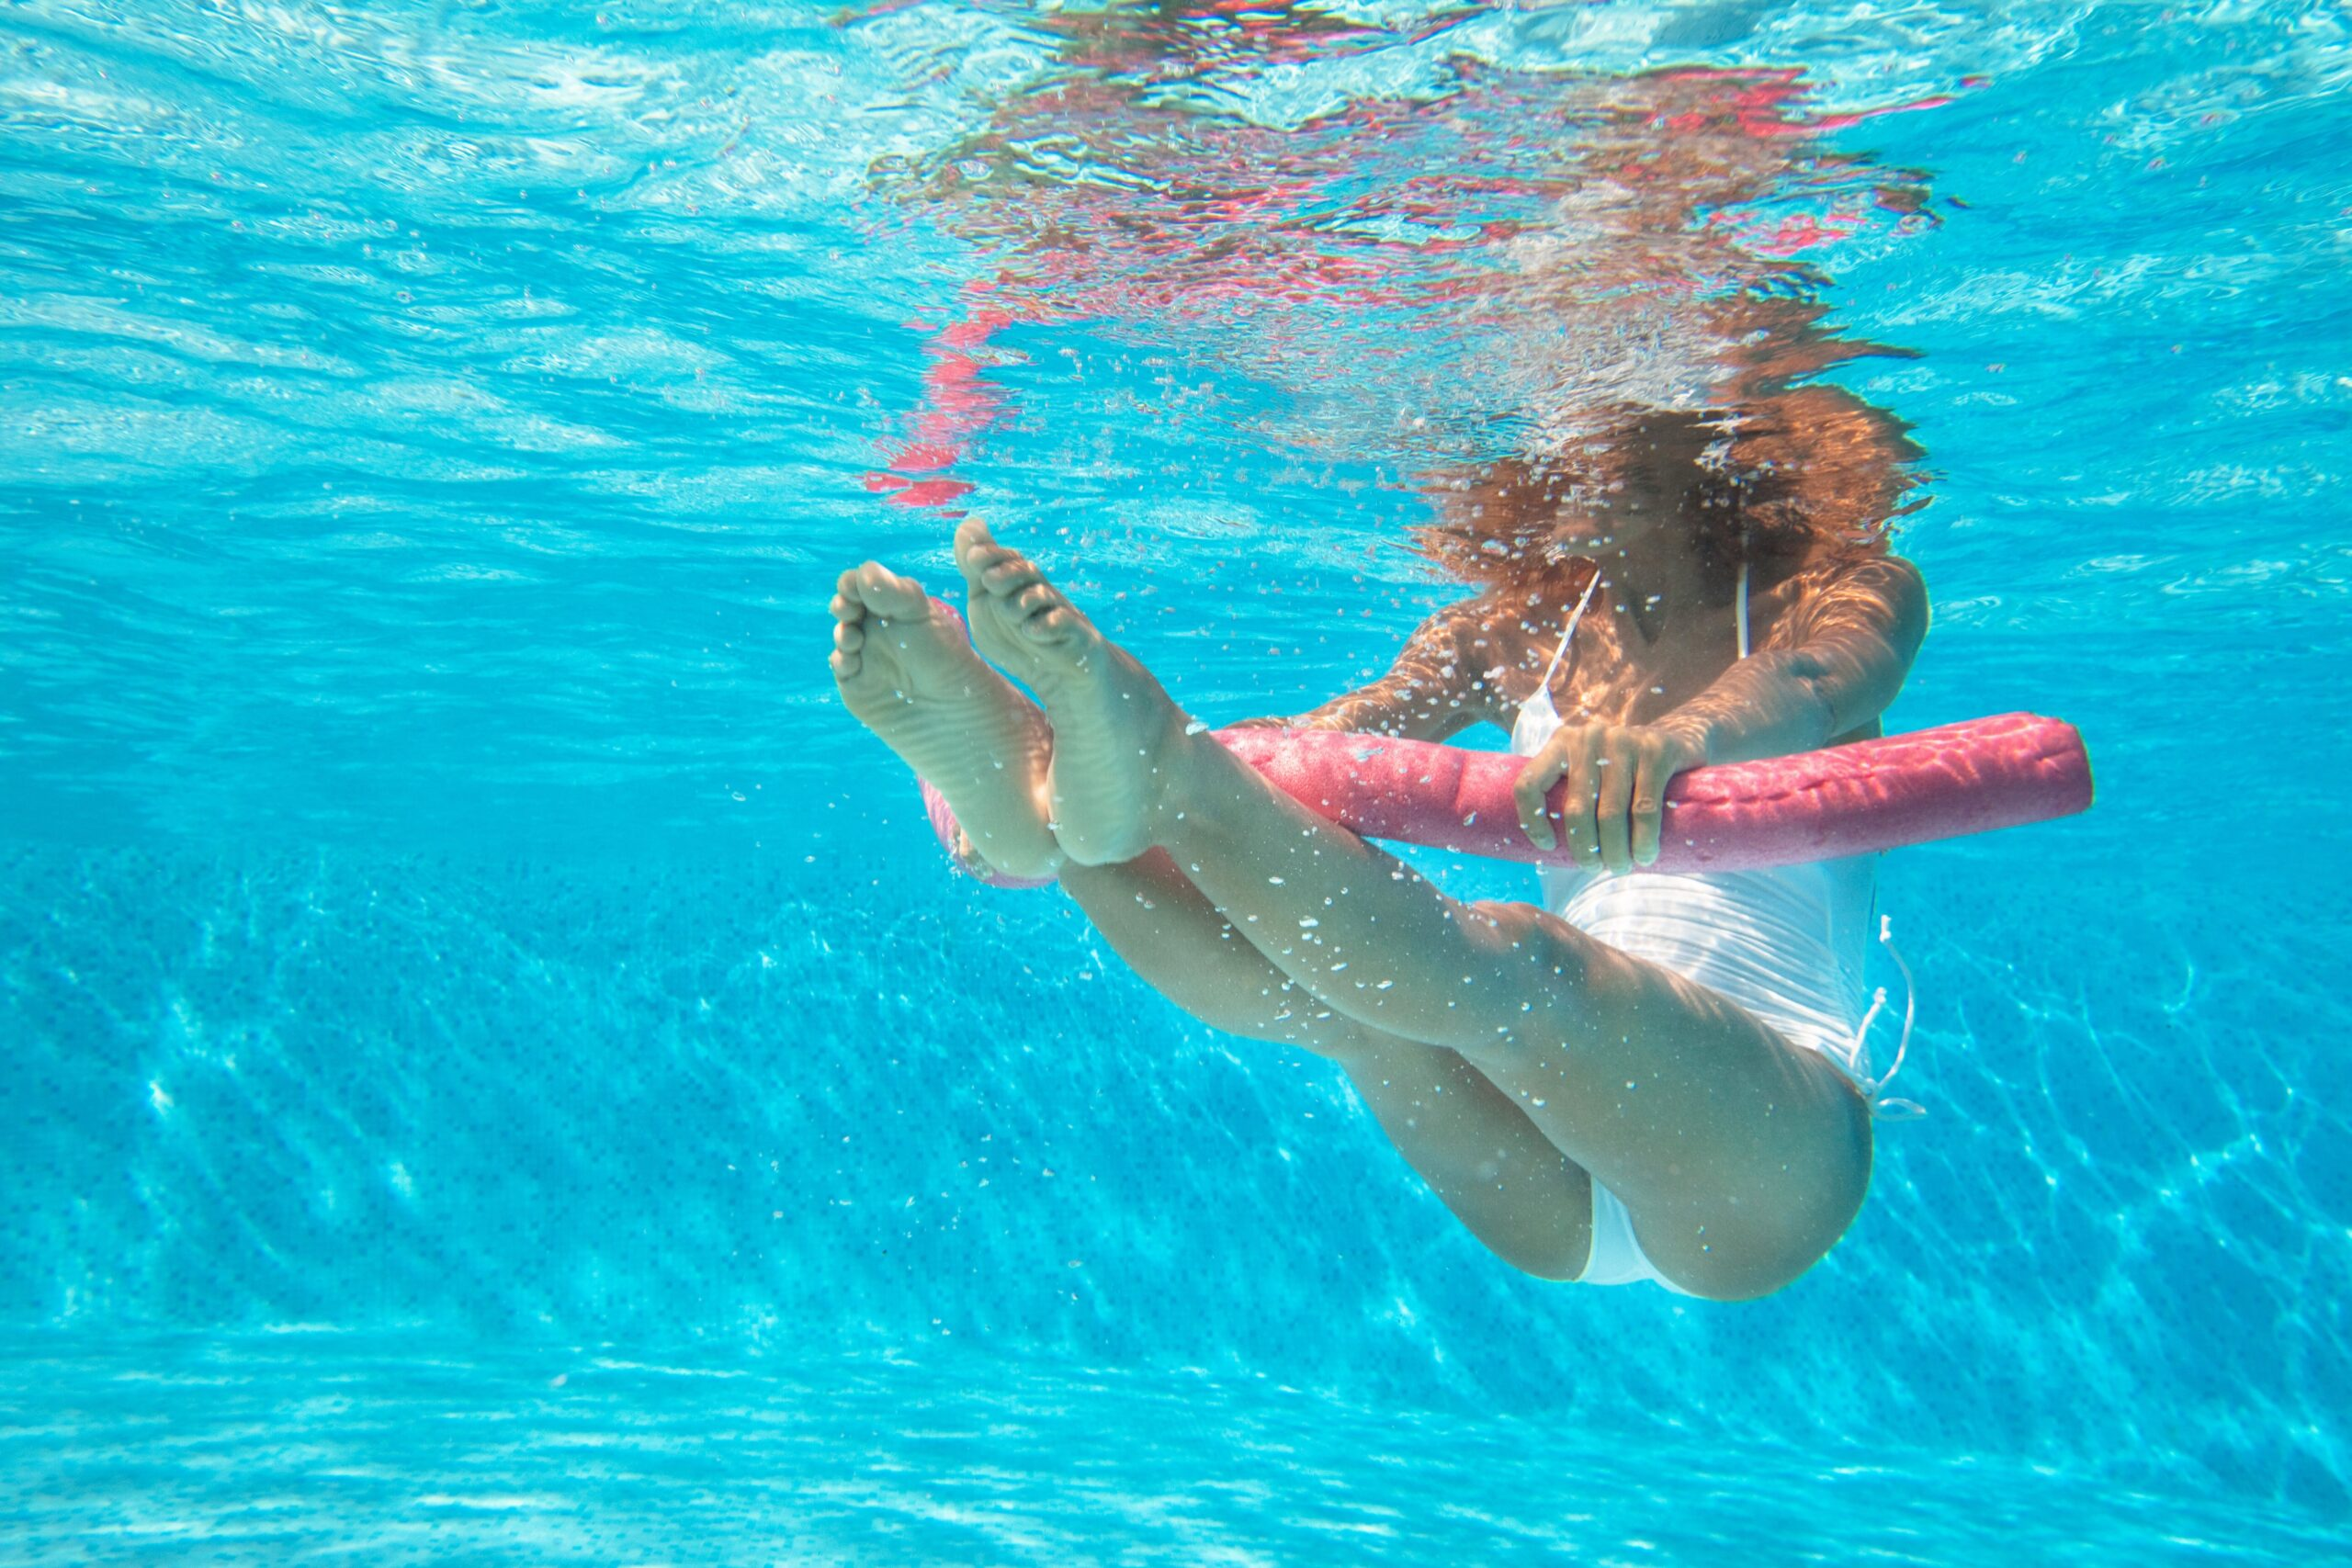 Water Aerobics Engages the Core in Body and Soul